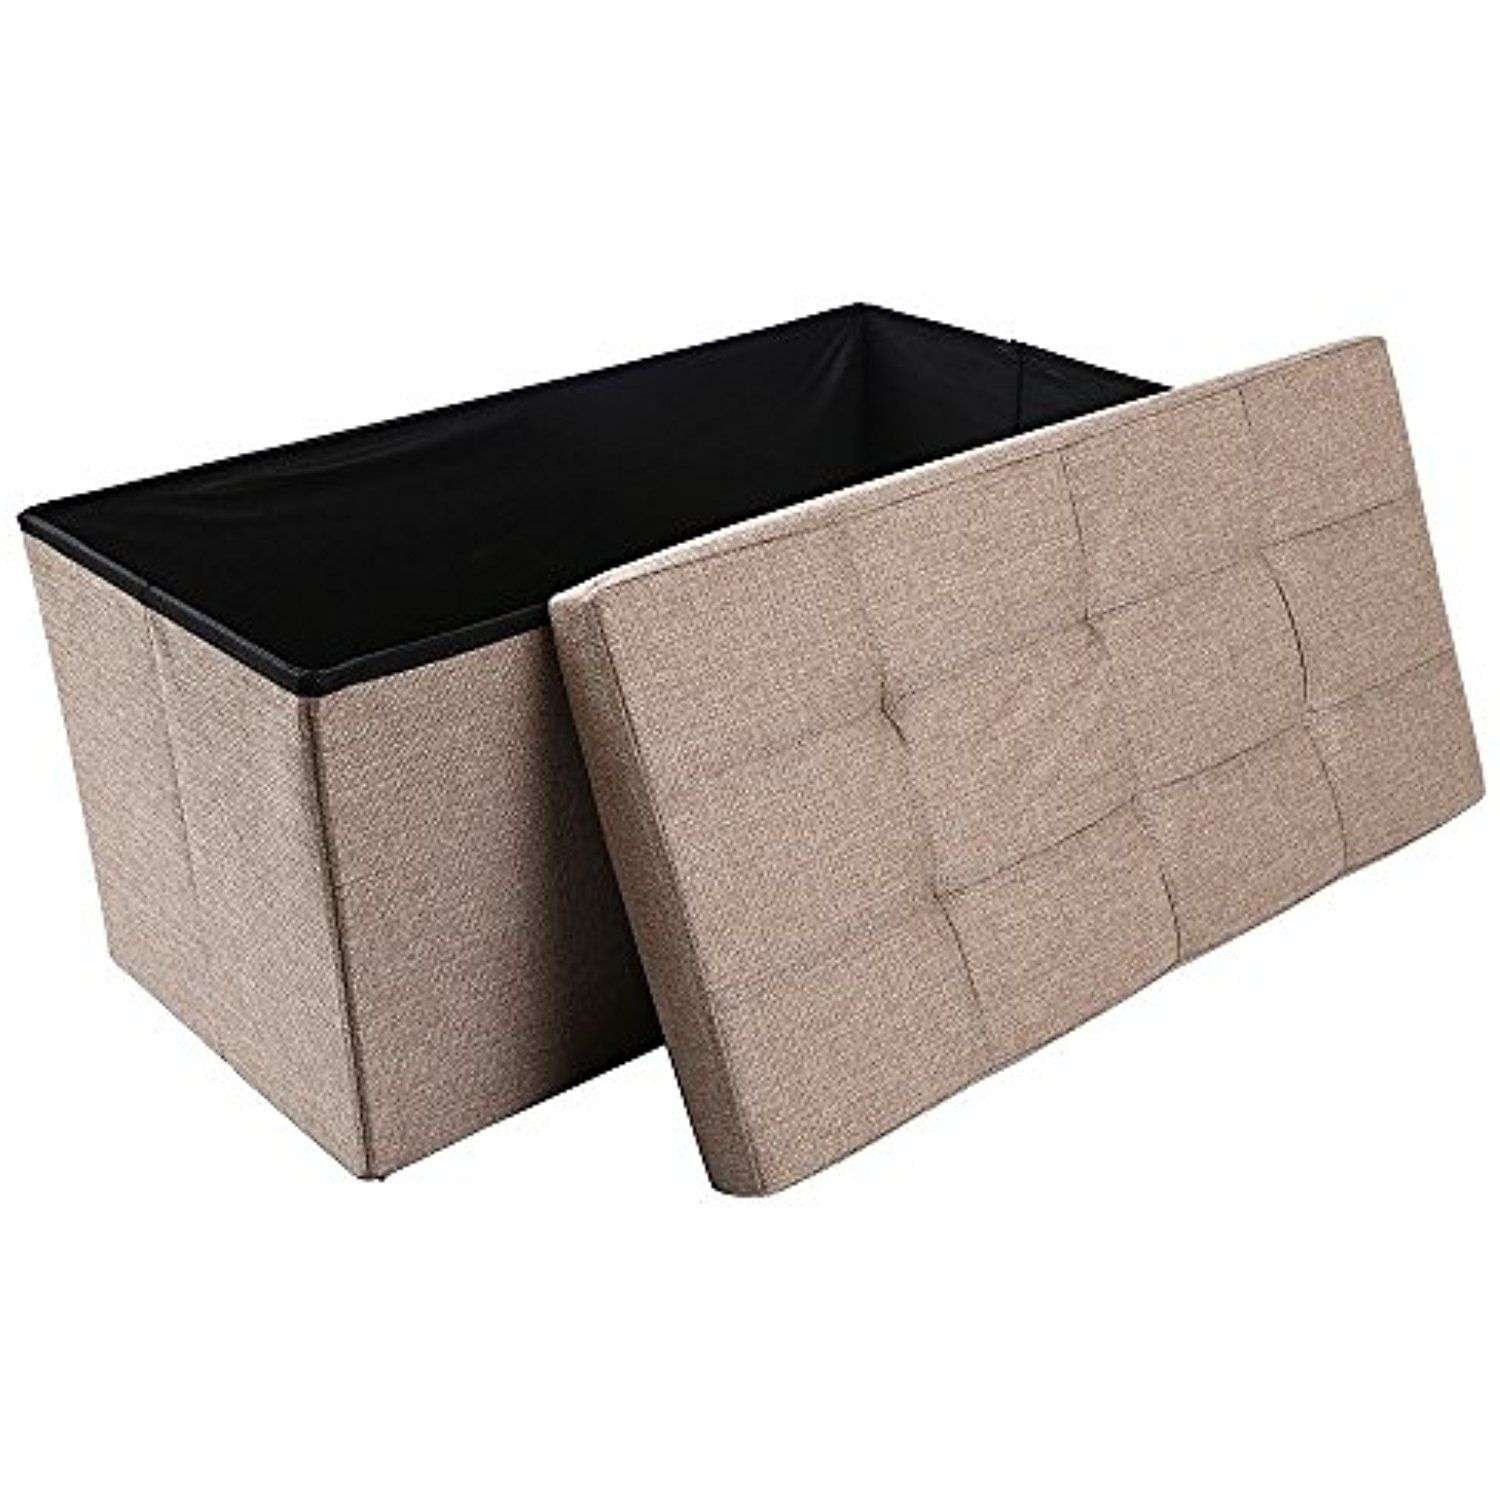 Super Storage Ottoman Folding Storage Bench Linen Like Fabric And Forskolin Free Trial Chair Design Images Forskolin Free Trialorg